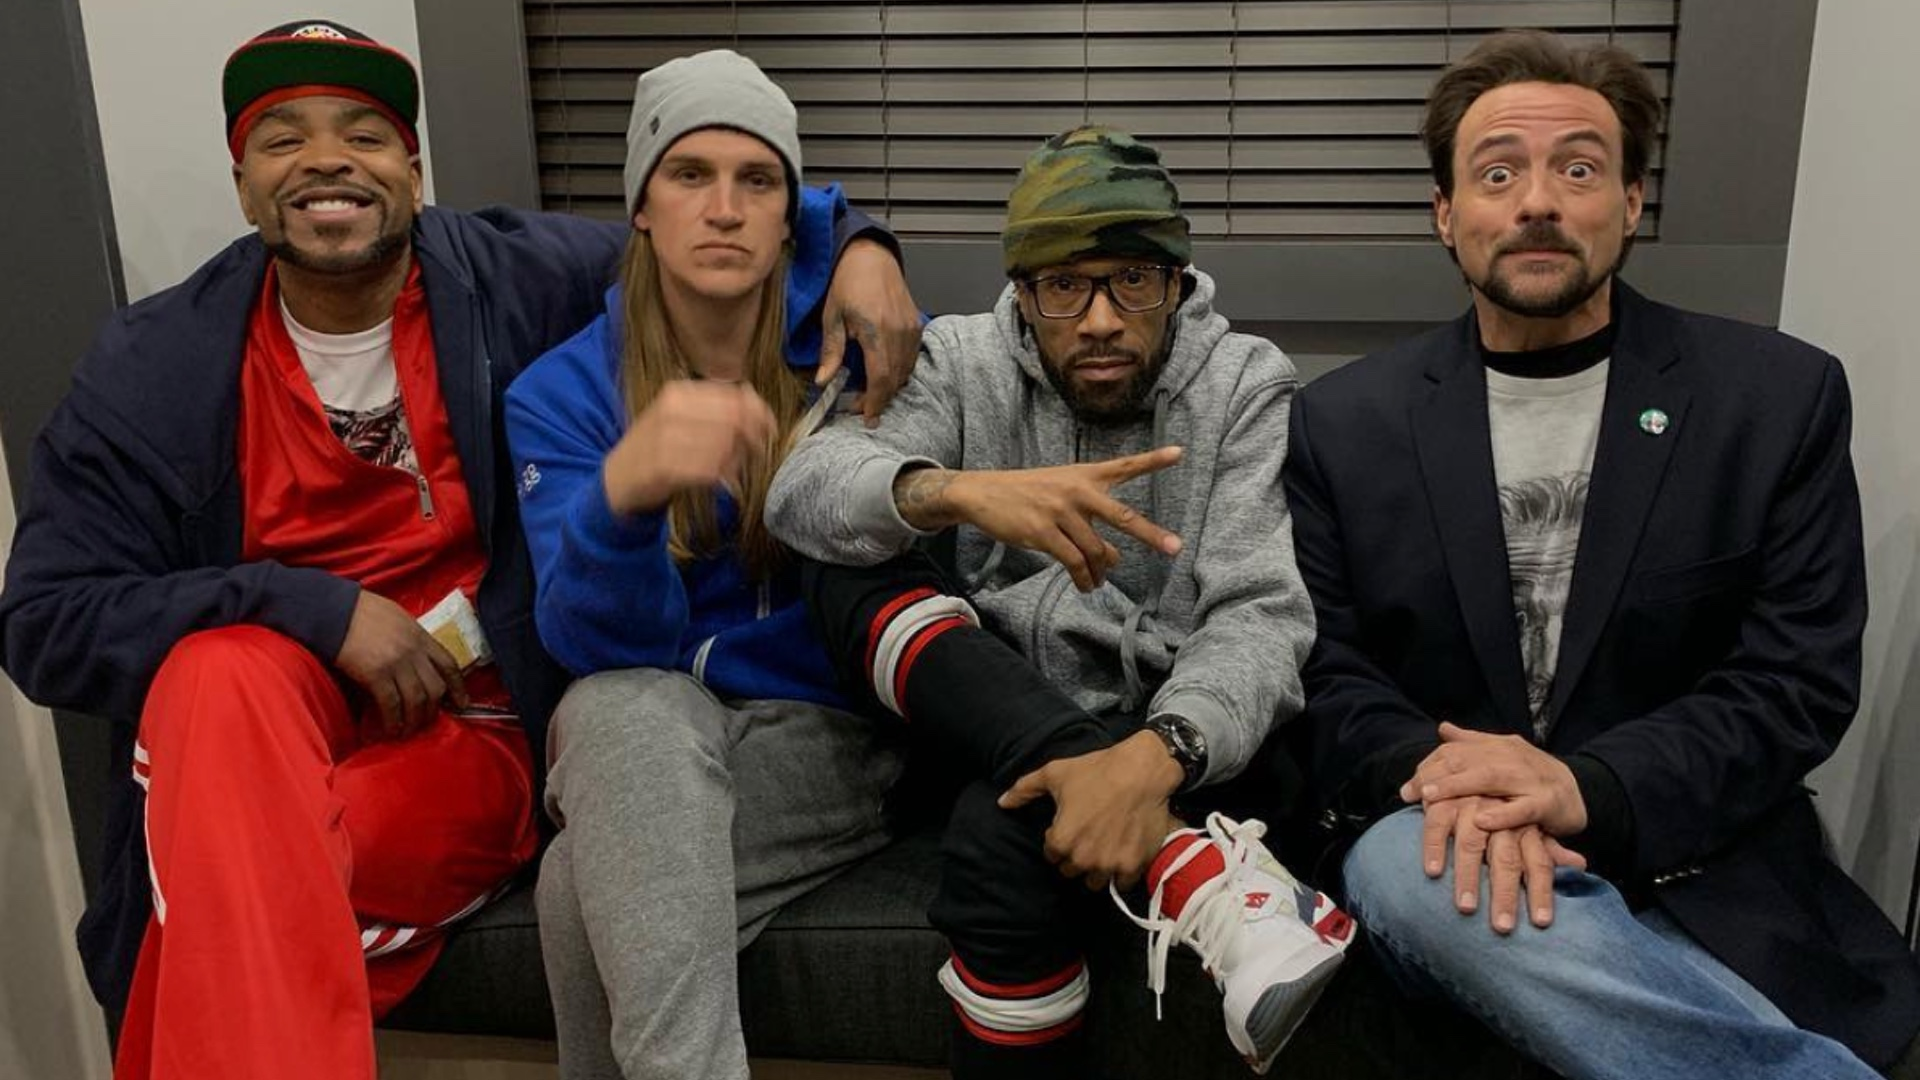 kevin-smith-casts-method-man-and-redman-in-jay-and-silent-bob-reboot-social.jpg